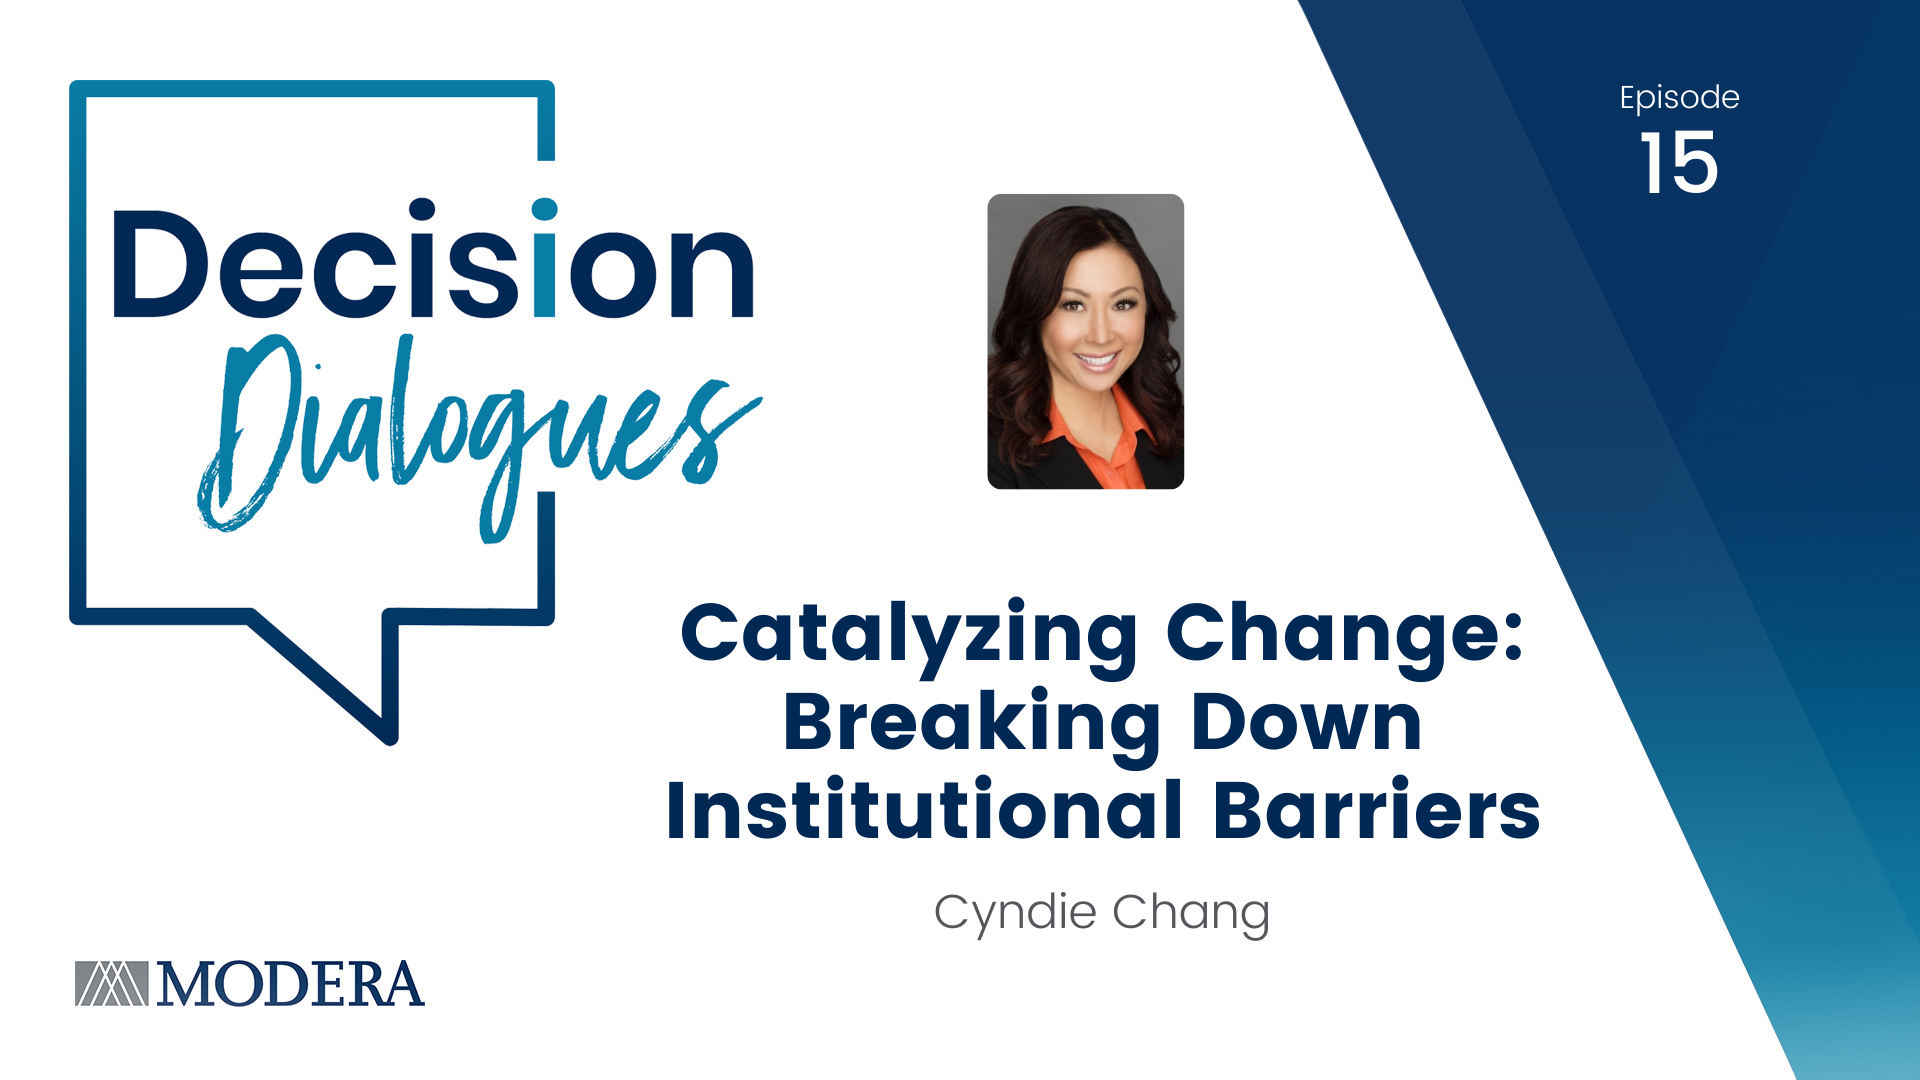 Decision Dialogues Episode 15 - Cyndie Chang